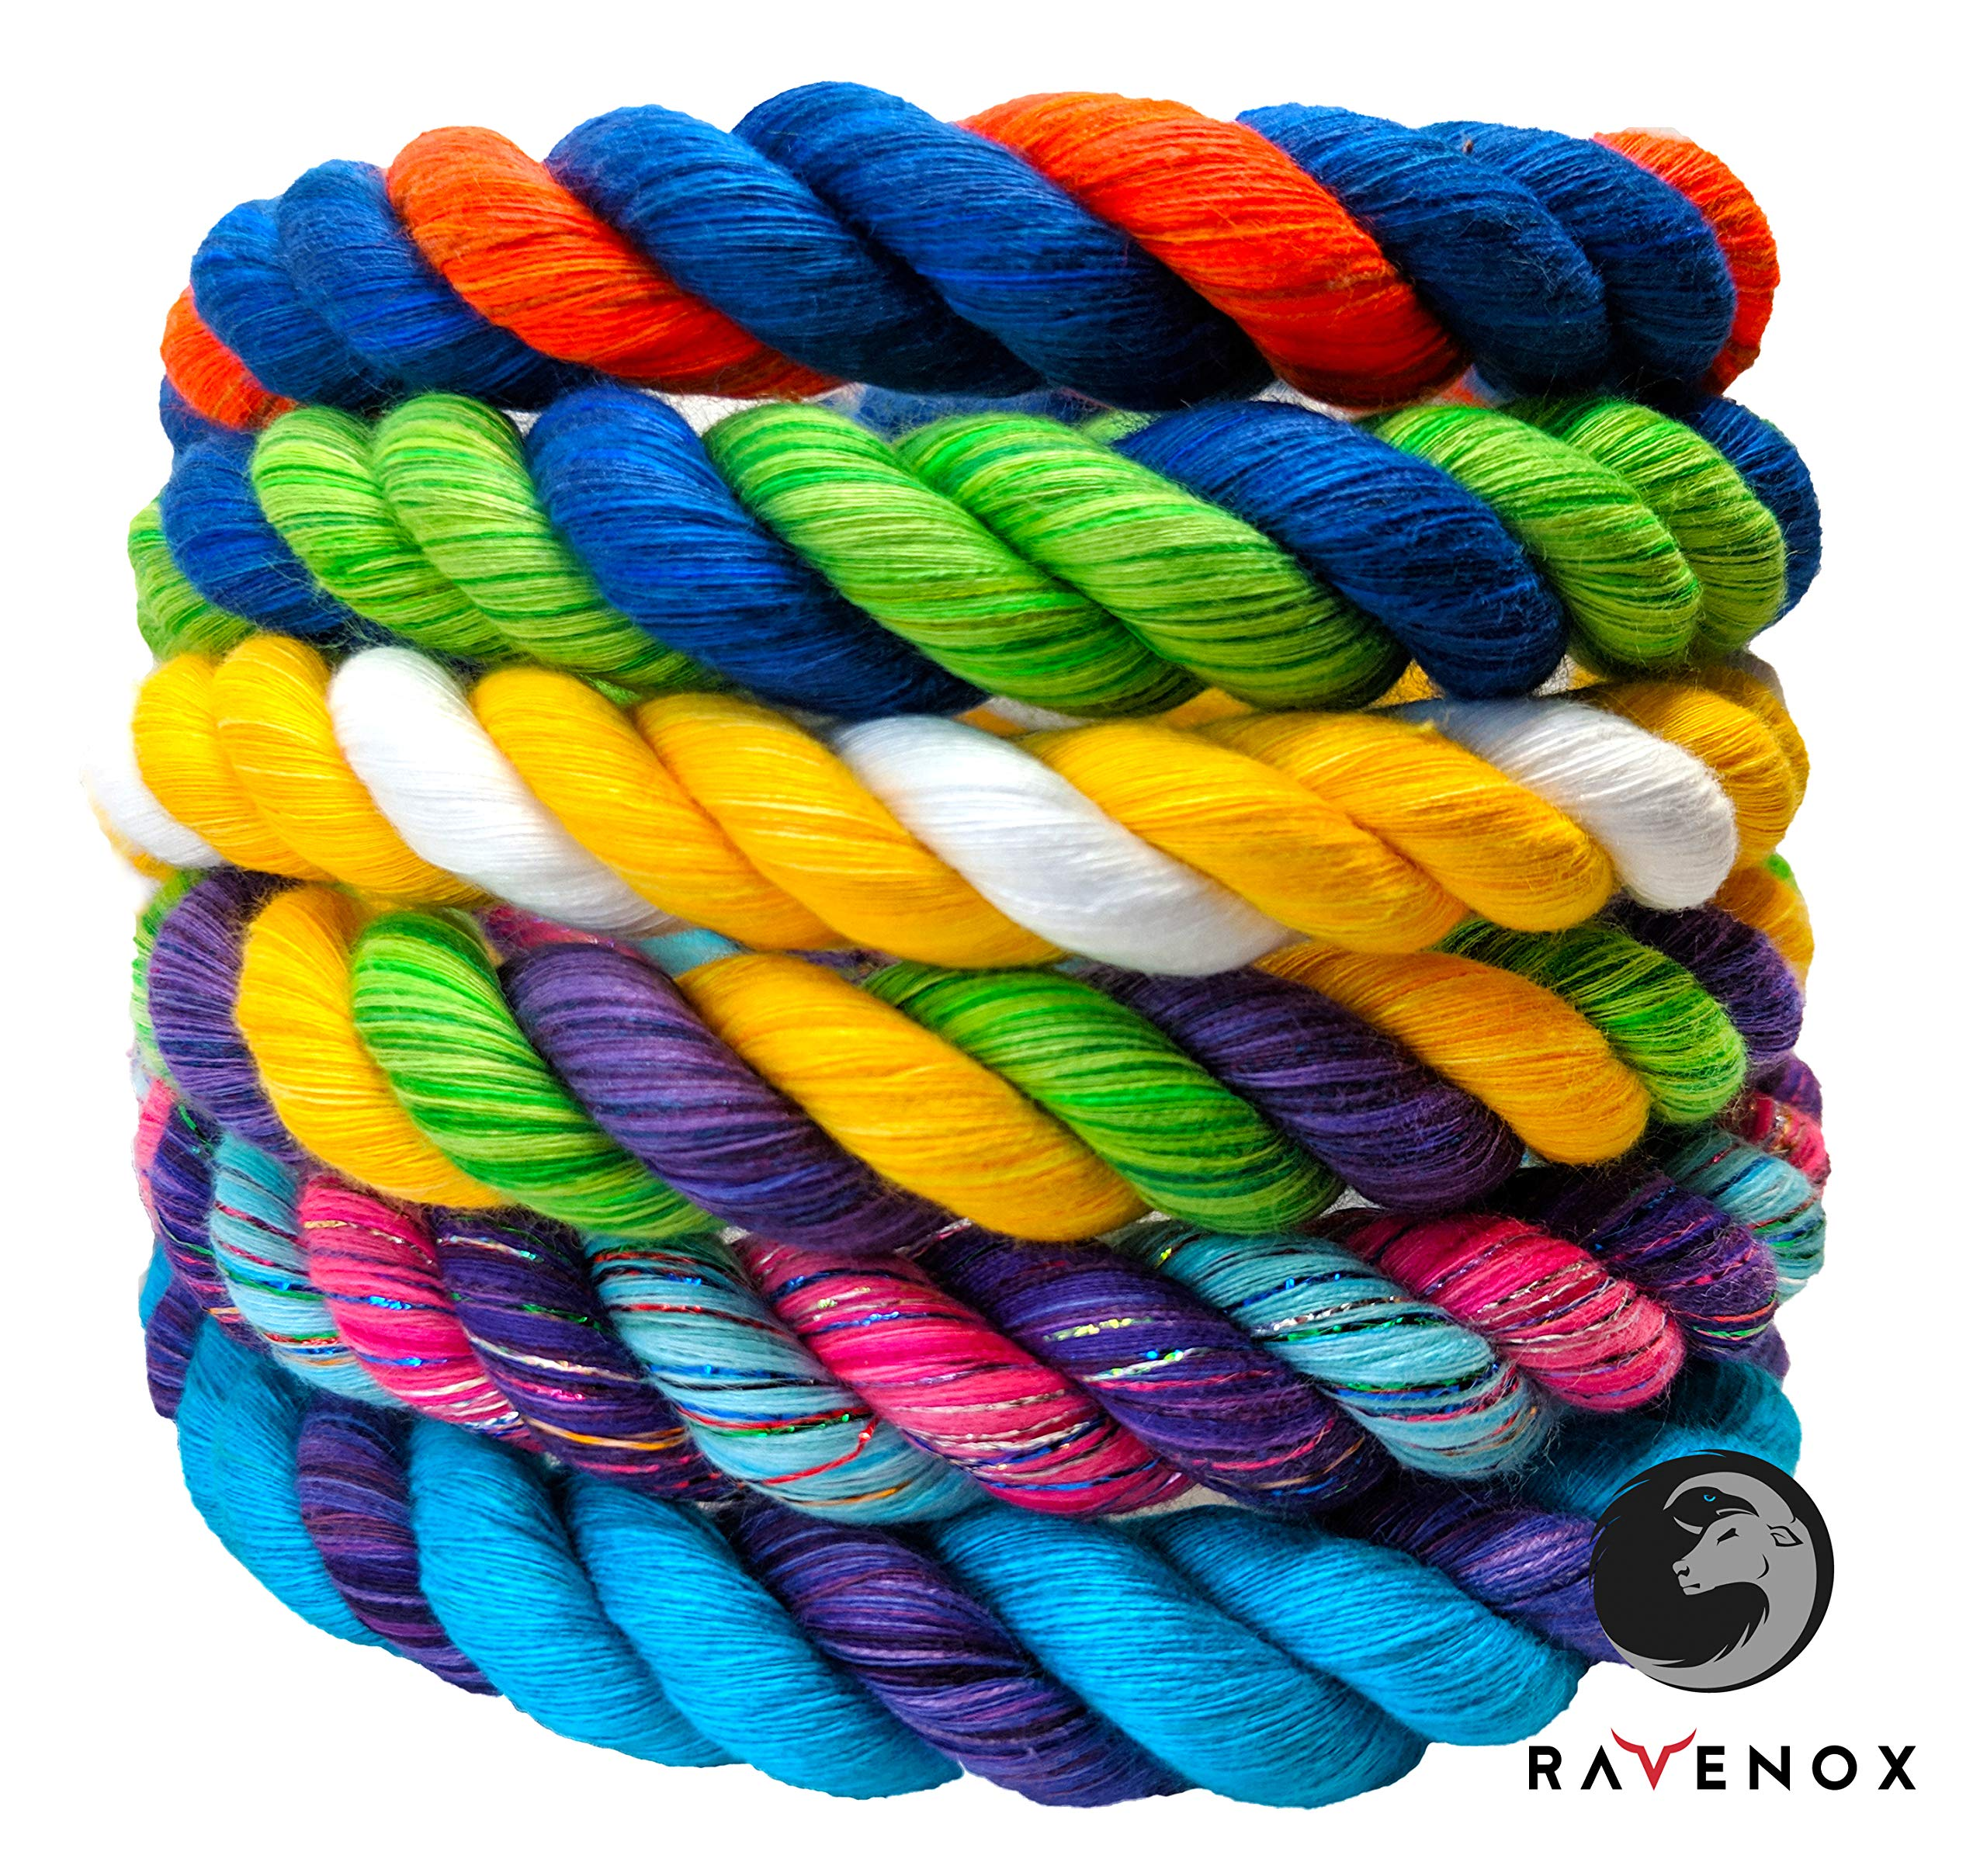 Ravenox Colorful Twisted Cotton Rope | Made in USA | (Red, Red & Black)(3/8 in x 100 ft) | Custom Color Cordage for Sport, Décor, Pet Toys, Craft, Macramé & General Use | Rope by The Foot & Diameter by Ravenox